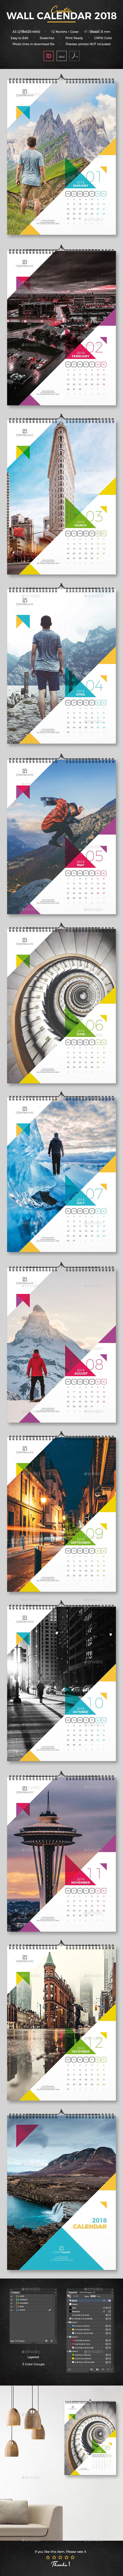 Wall Calendar 2018 Template InDesign INDD